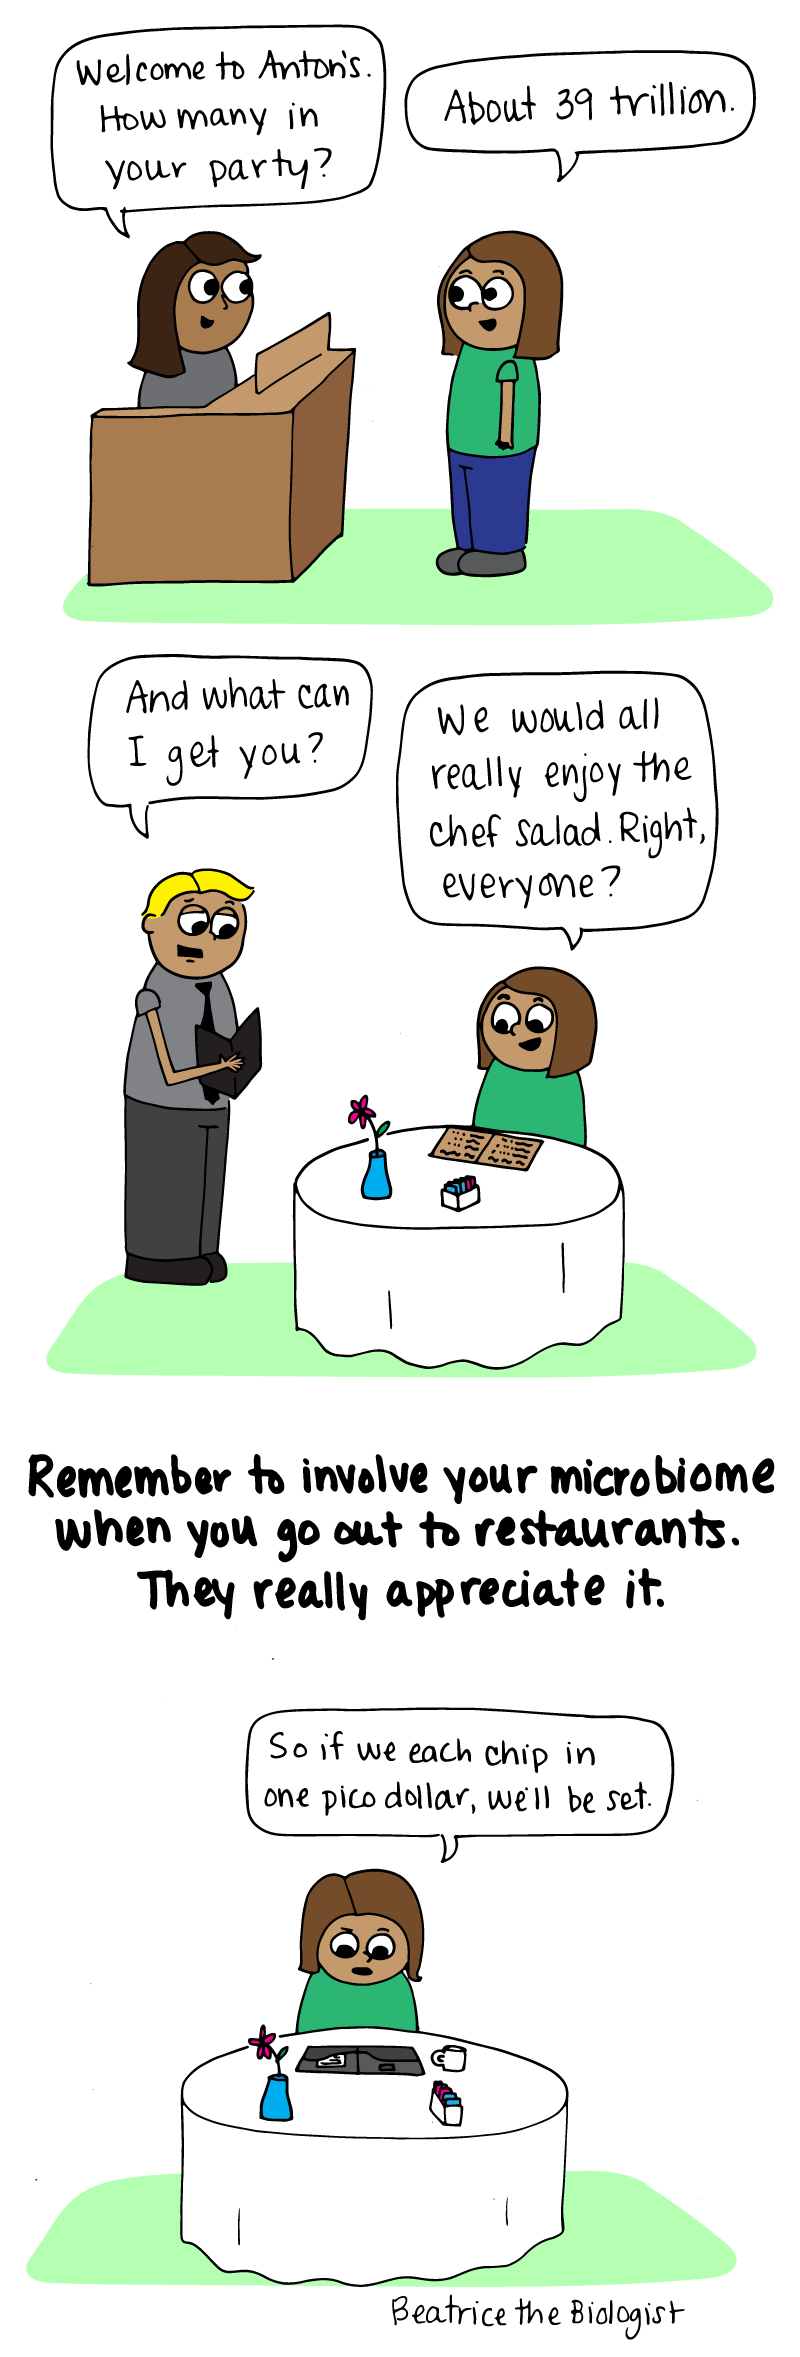 going to a restaurant with your microbiome